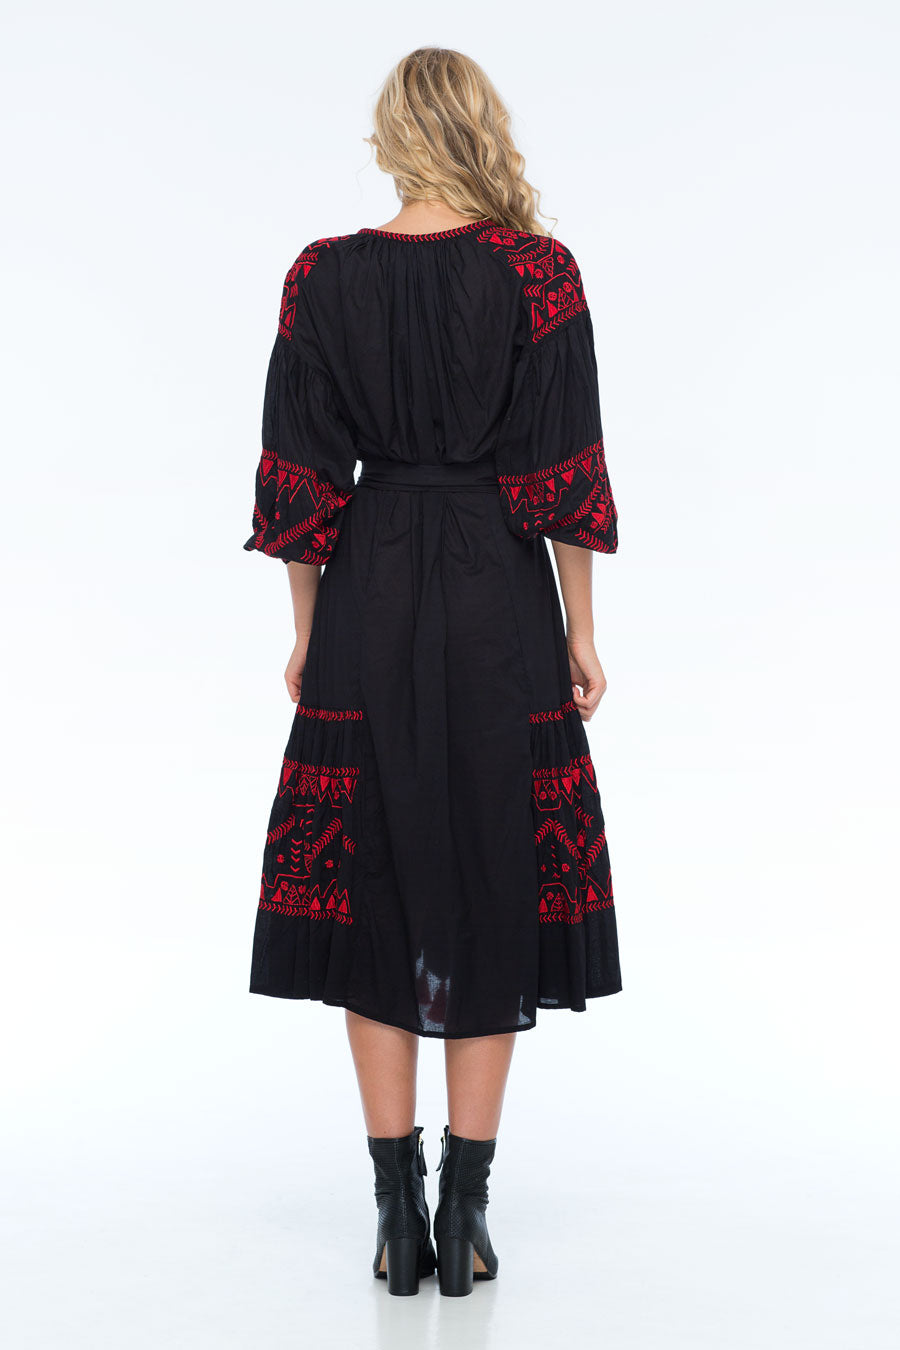 ROSEMARY BLACK MAXI DRESS